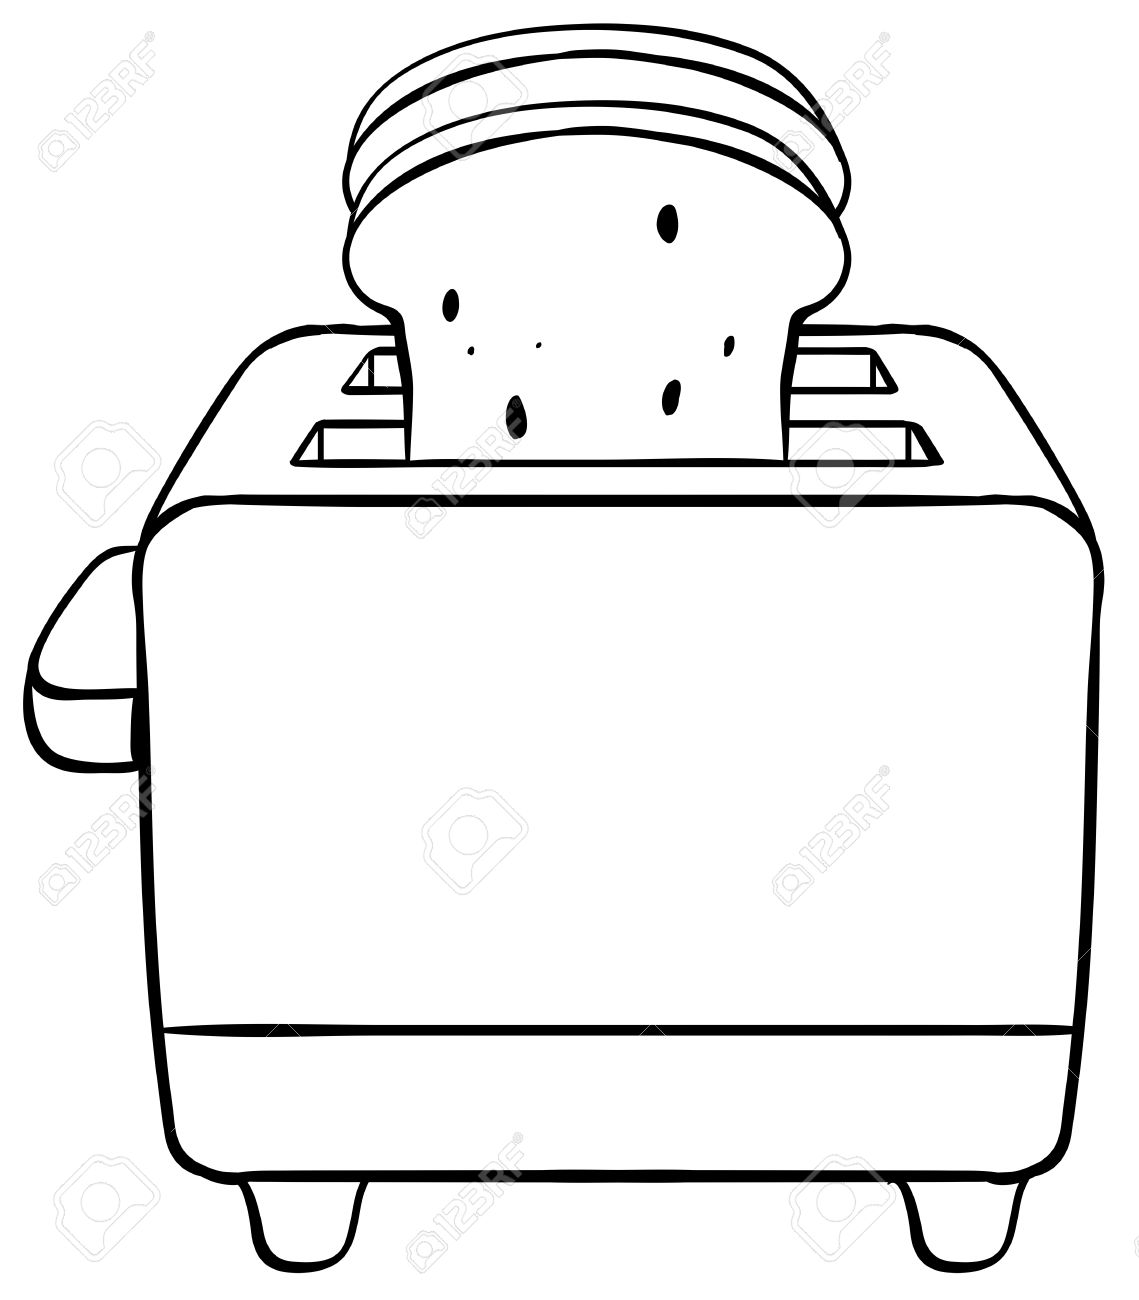 1139x1300 Close Up Electronic Toaster With Toasted Bread Royalty Free